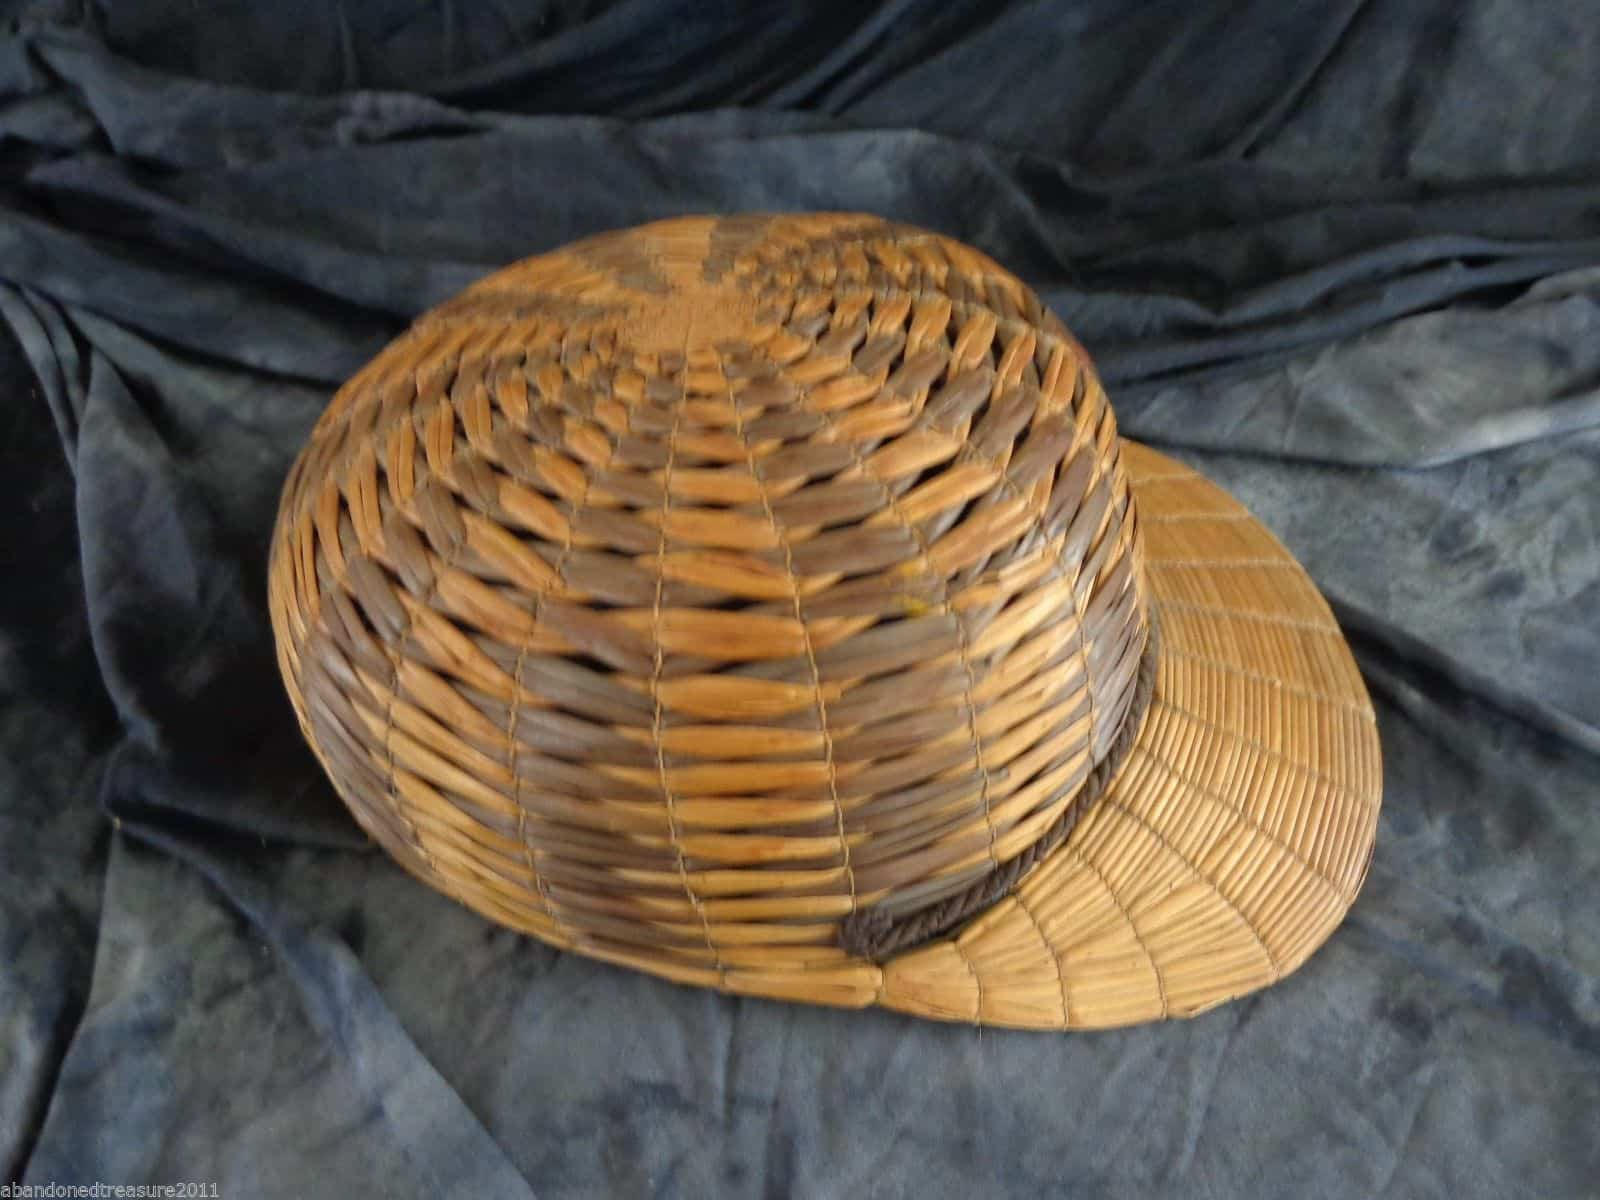 tied straw hat, Yeddo straw hat, Italian straw hat, men's straw fashion